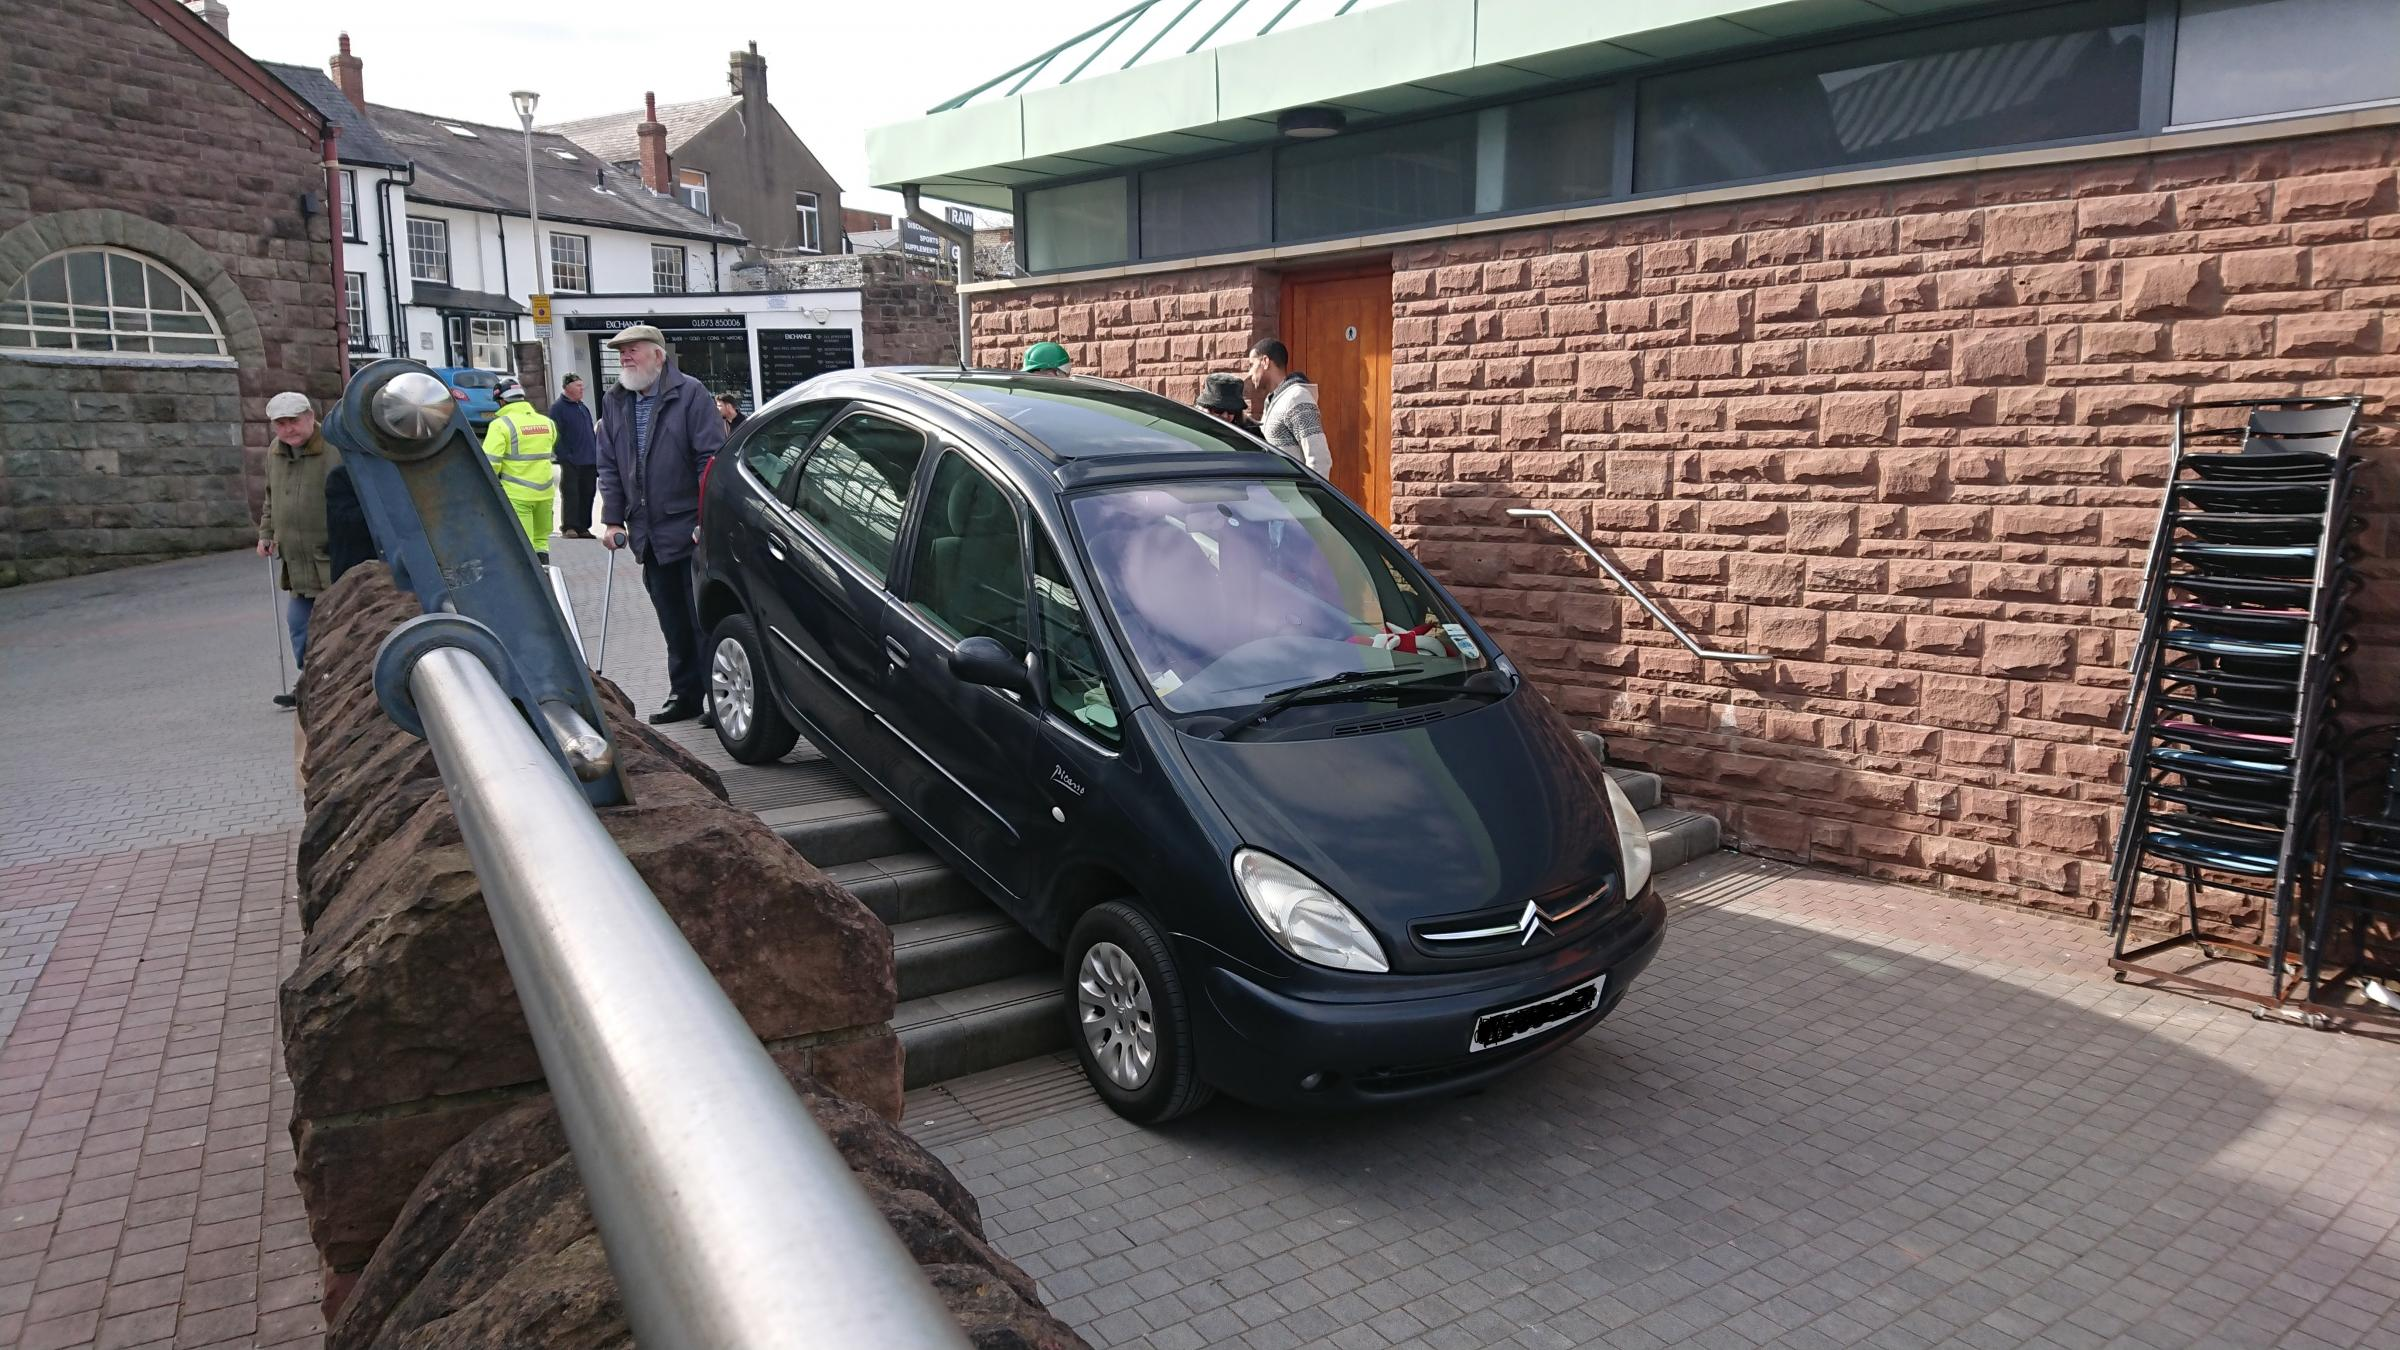 The car ended up in a pedestrian area in Market Street, Abergavenny. Picture: Wayne Gibbon